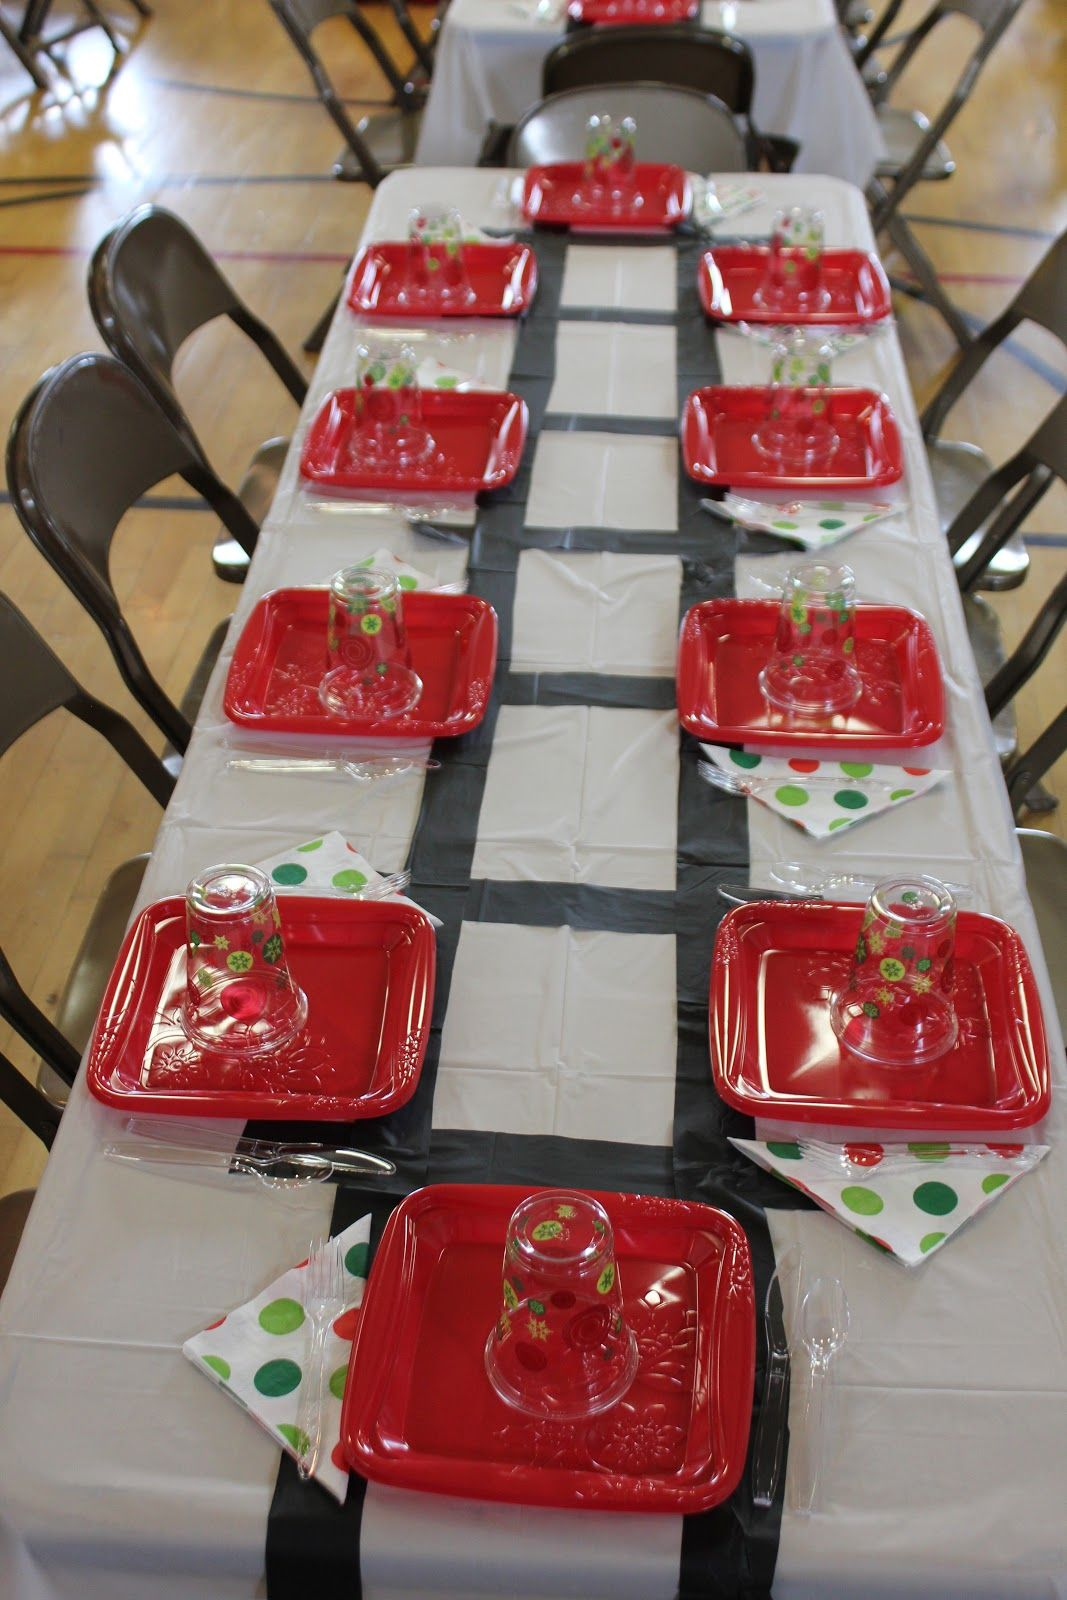 Kids christmas party decorations - This Year I Was Asked To Help Co Chair The Christmas Party And We Decided On The Polar Express Theme Thanks To The Many